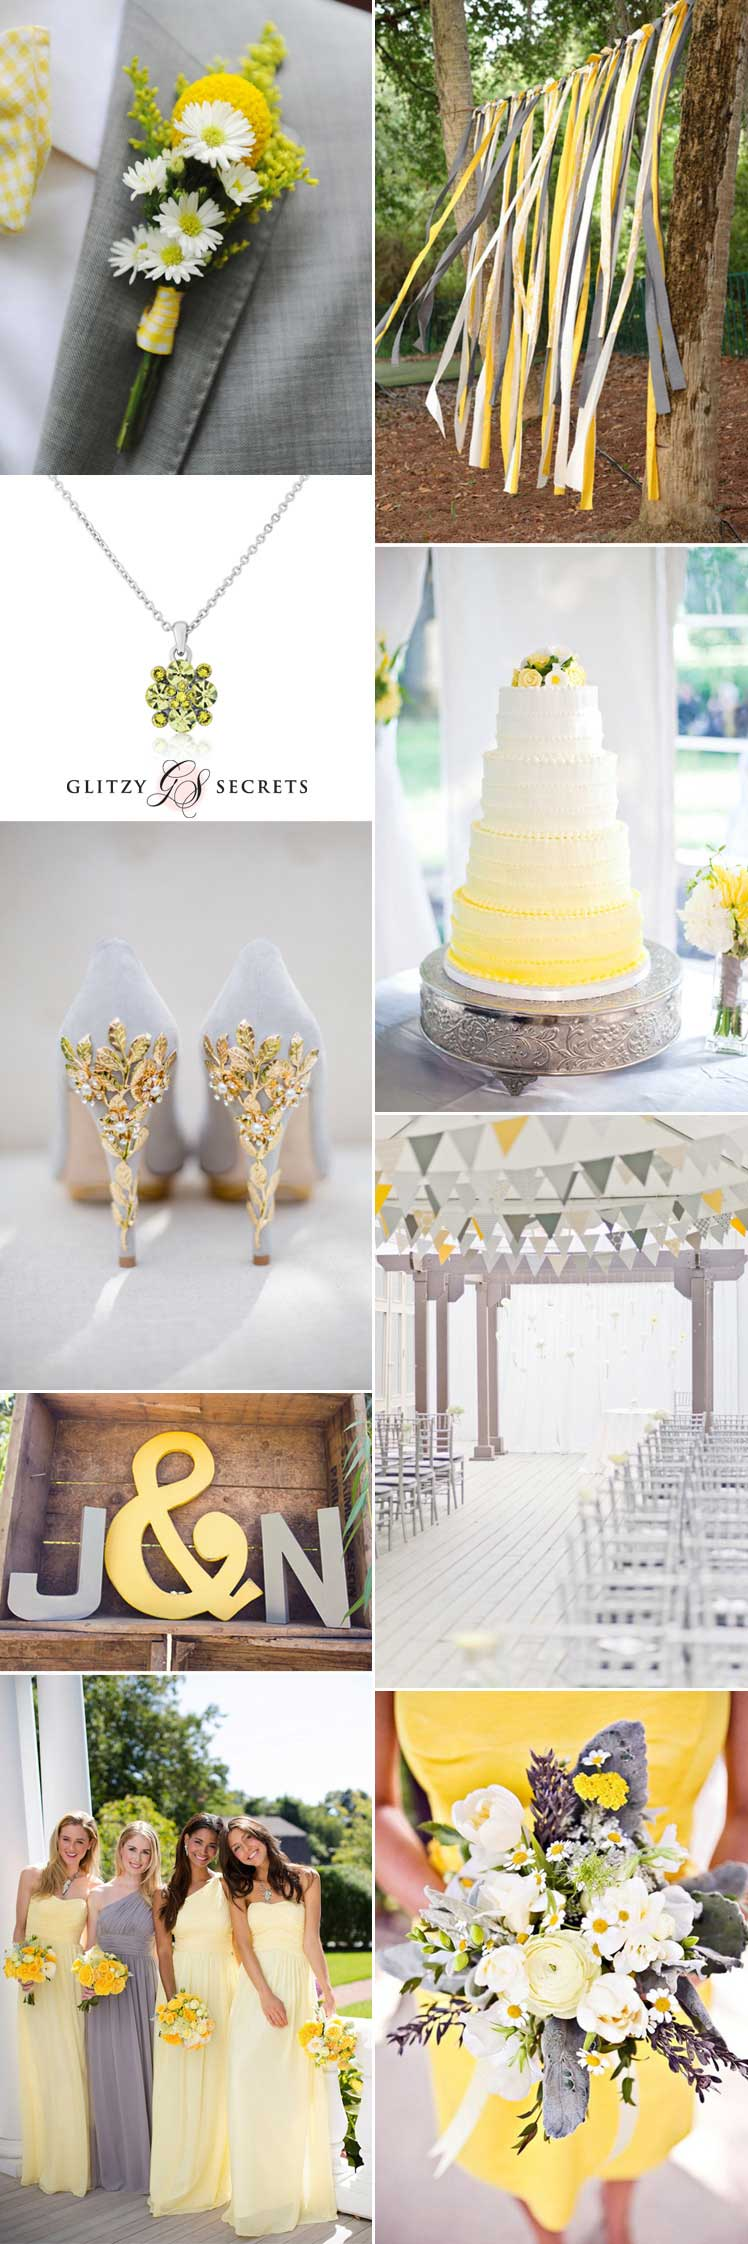 Beautiful wedding inspiration for a yellow and grey wedding